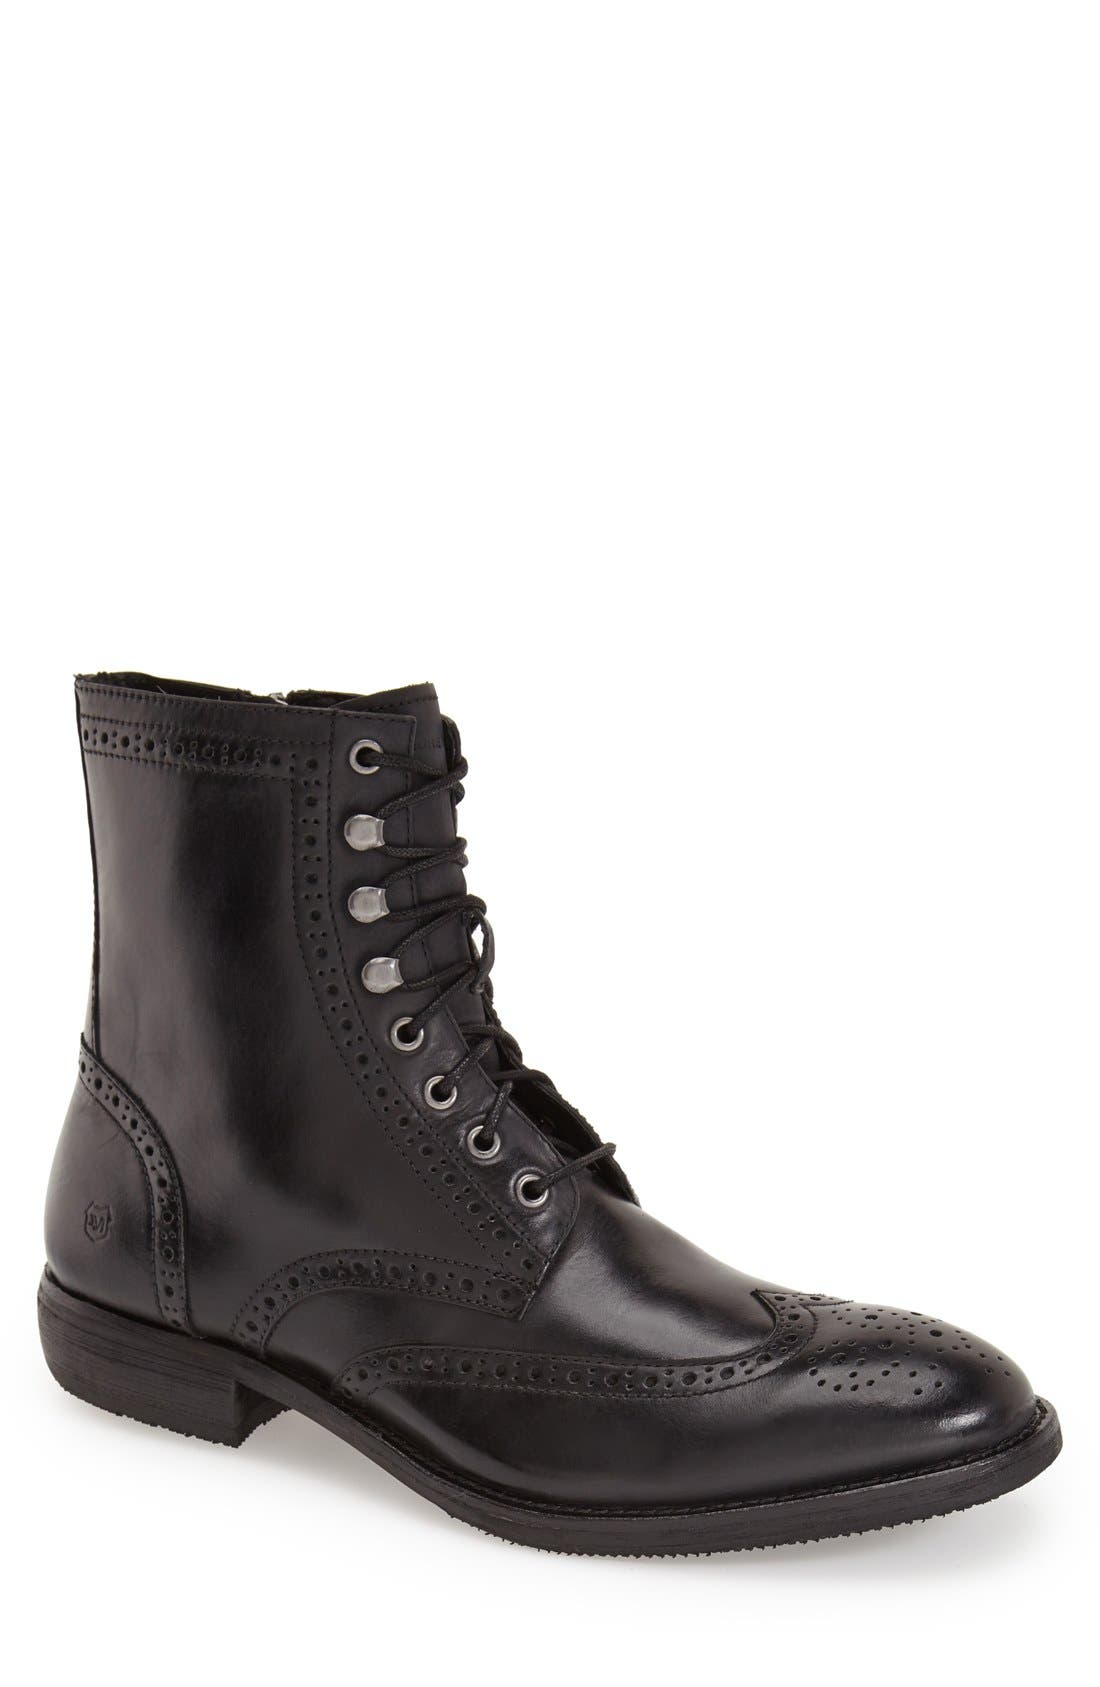 Main Image - Andrew Marc 'Hillcrest' Wingtip Boot (Men)